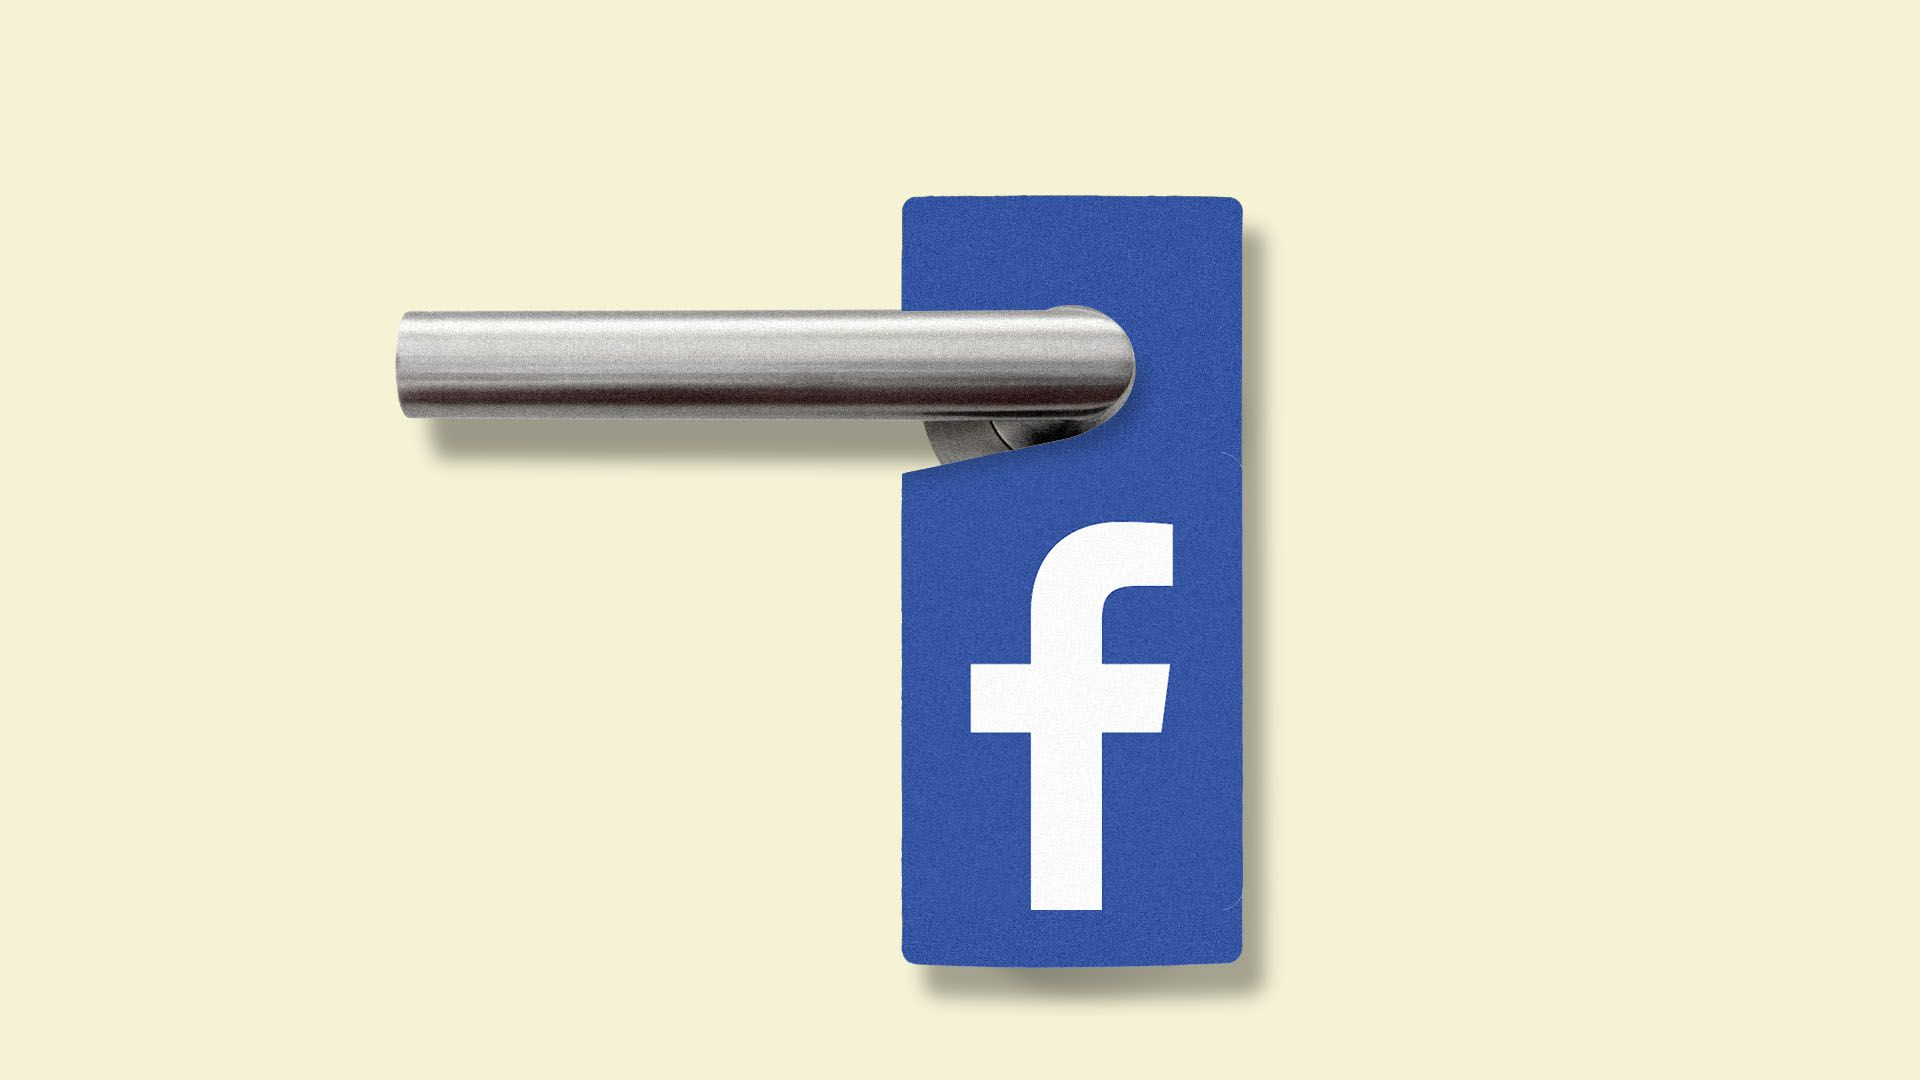 """""""Do not disturb"""" sign hanging on a door handle with a Facebook logo"""